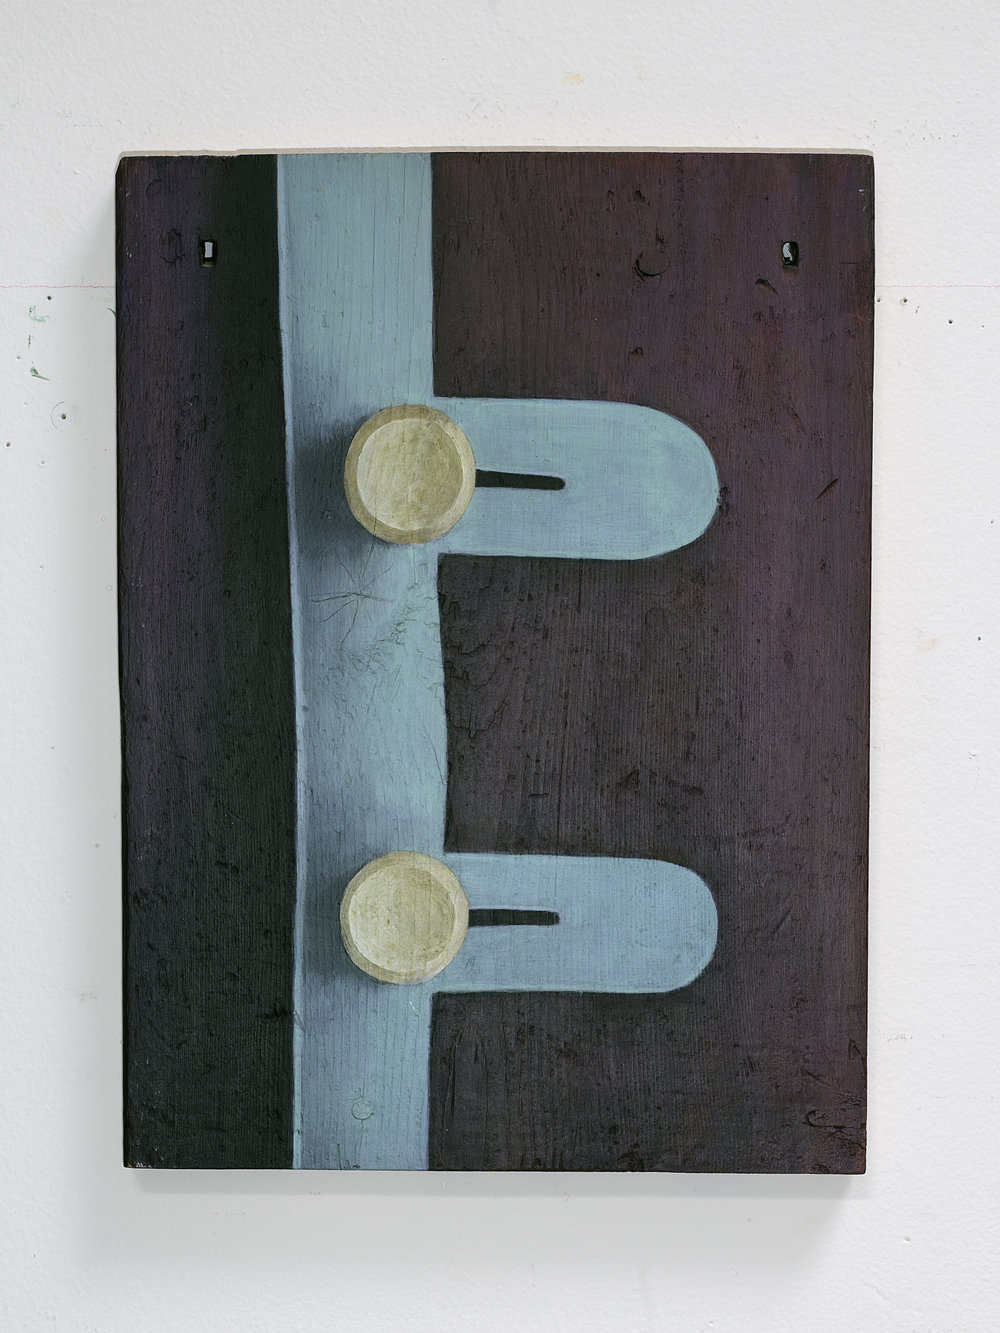 Patrick Dunfey,  Nugent,  1992, pigment, acrylic polymer, and gesso on board, 12.75h x 9.5w in.